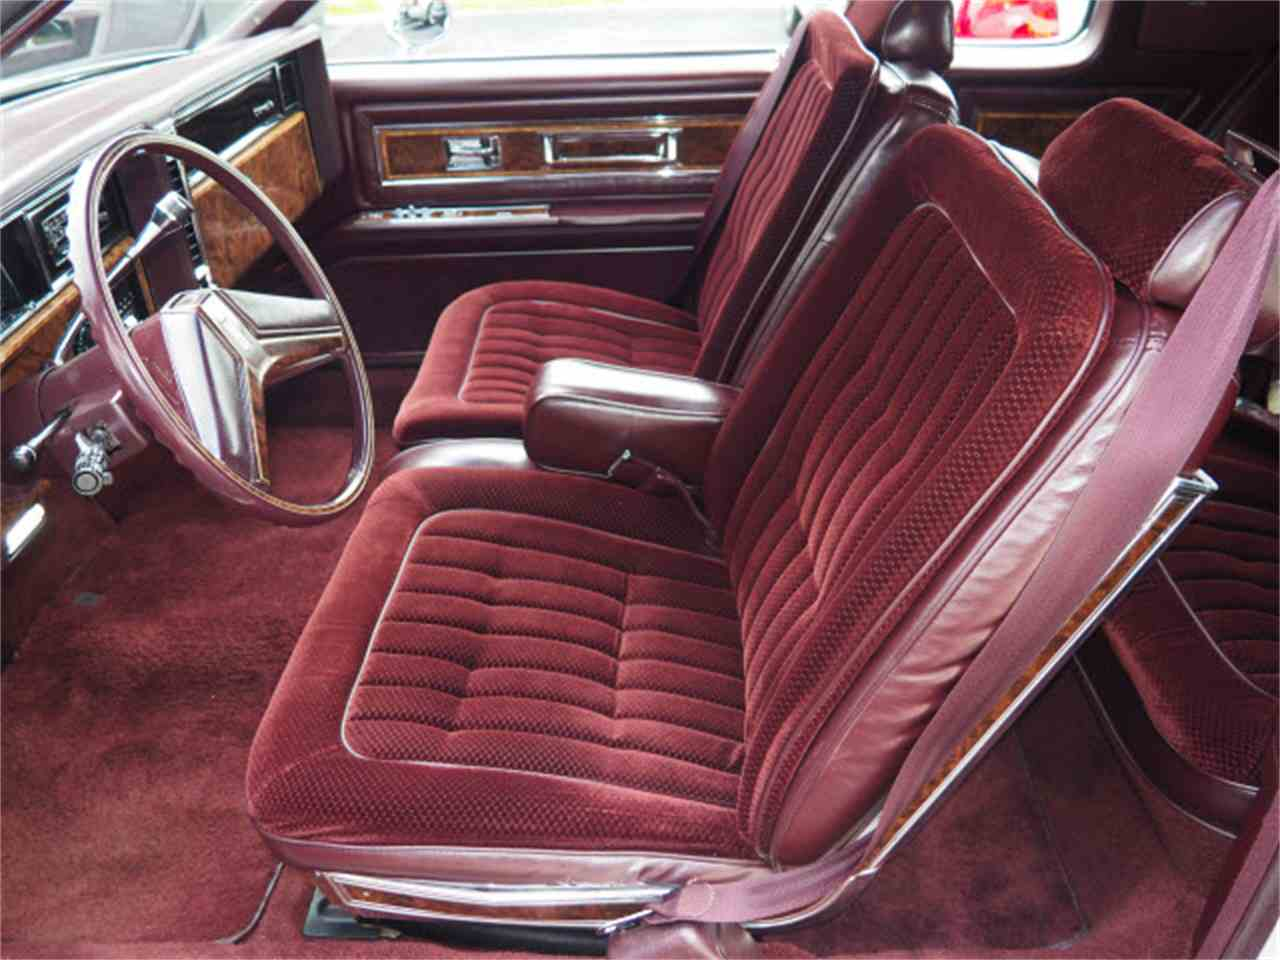 Large Picture of '85 Toronado - $15,999.00 Offered by Nelson Automotive, Ltd. - LUQO